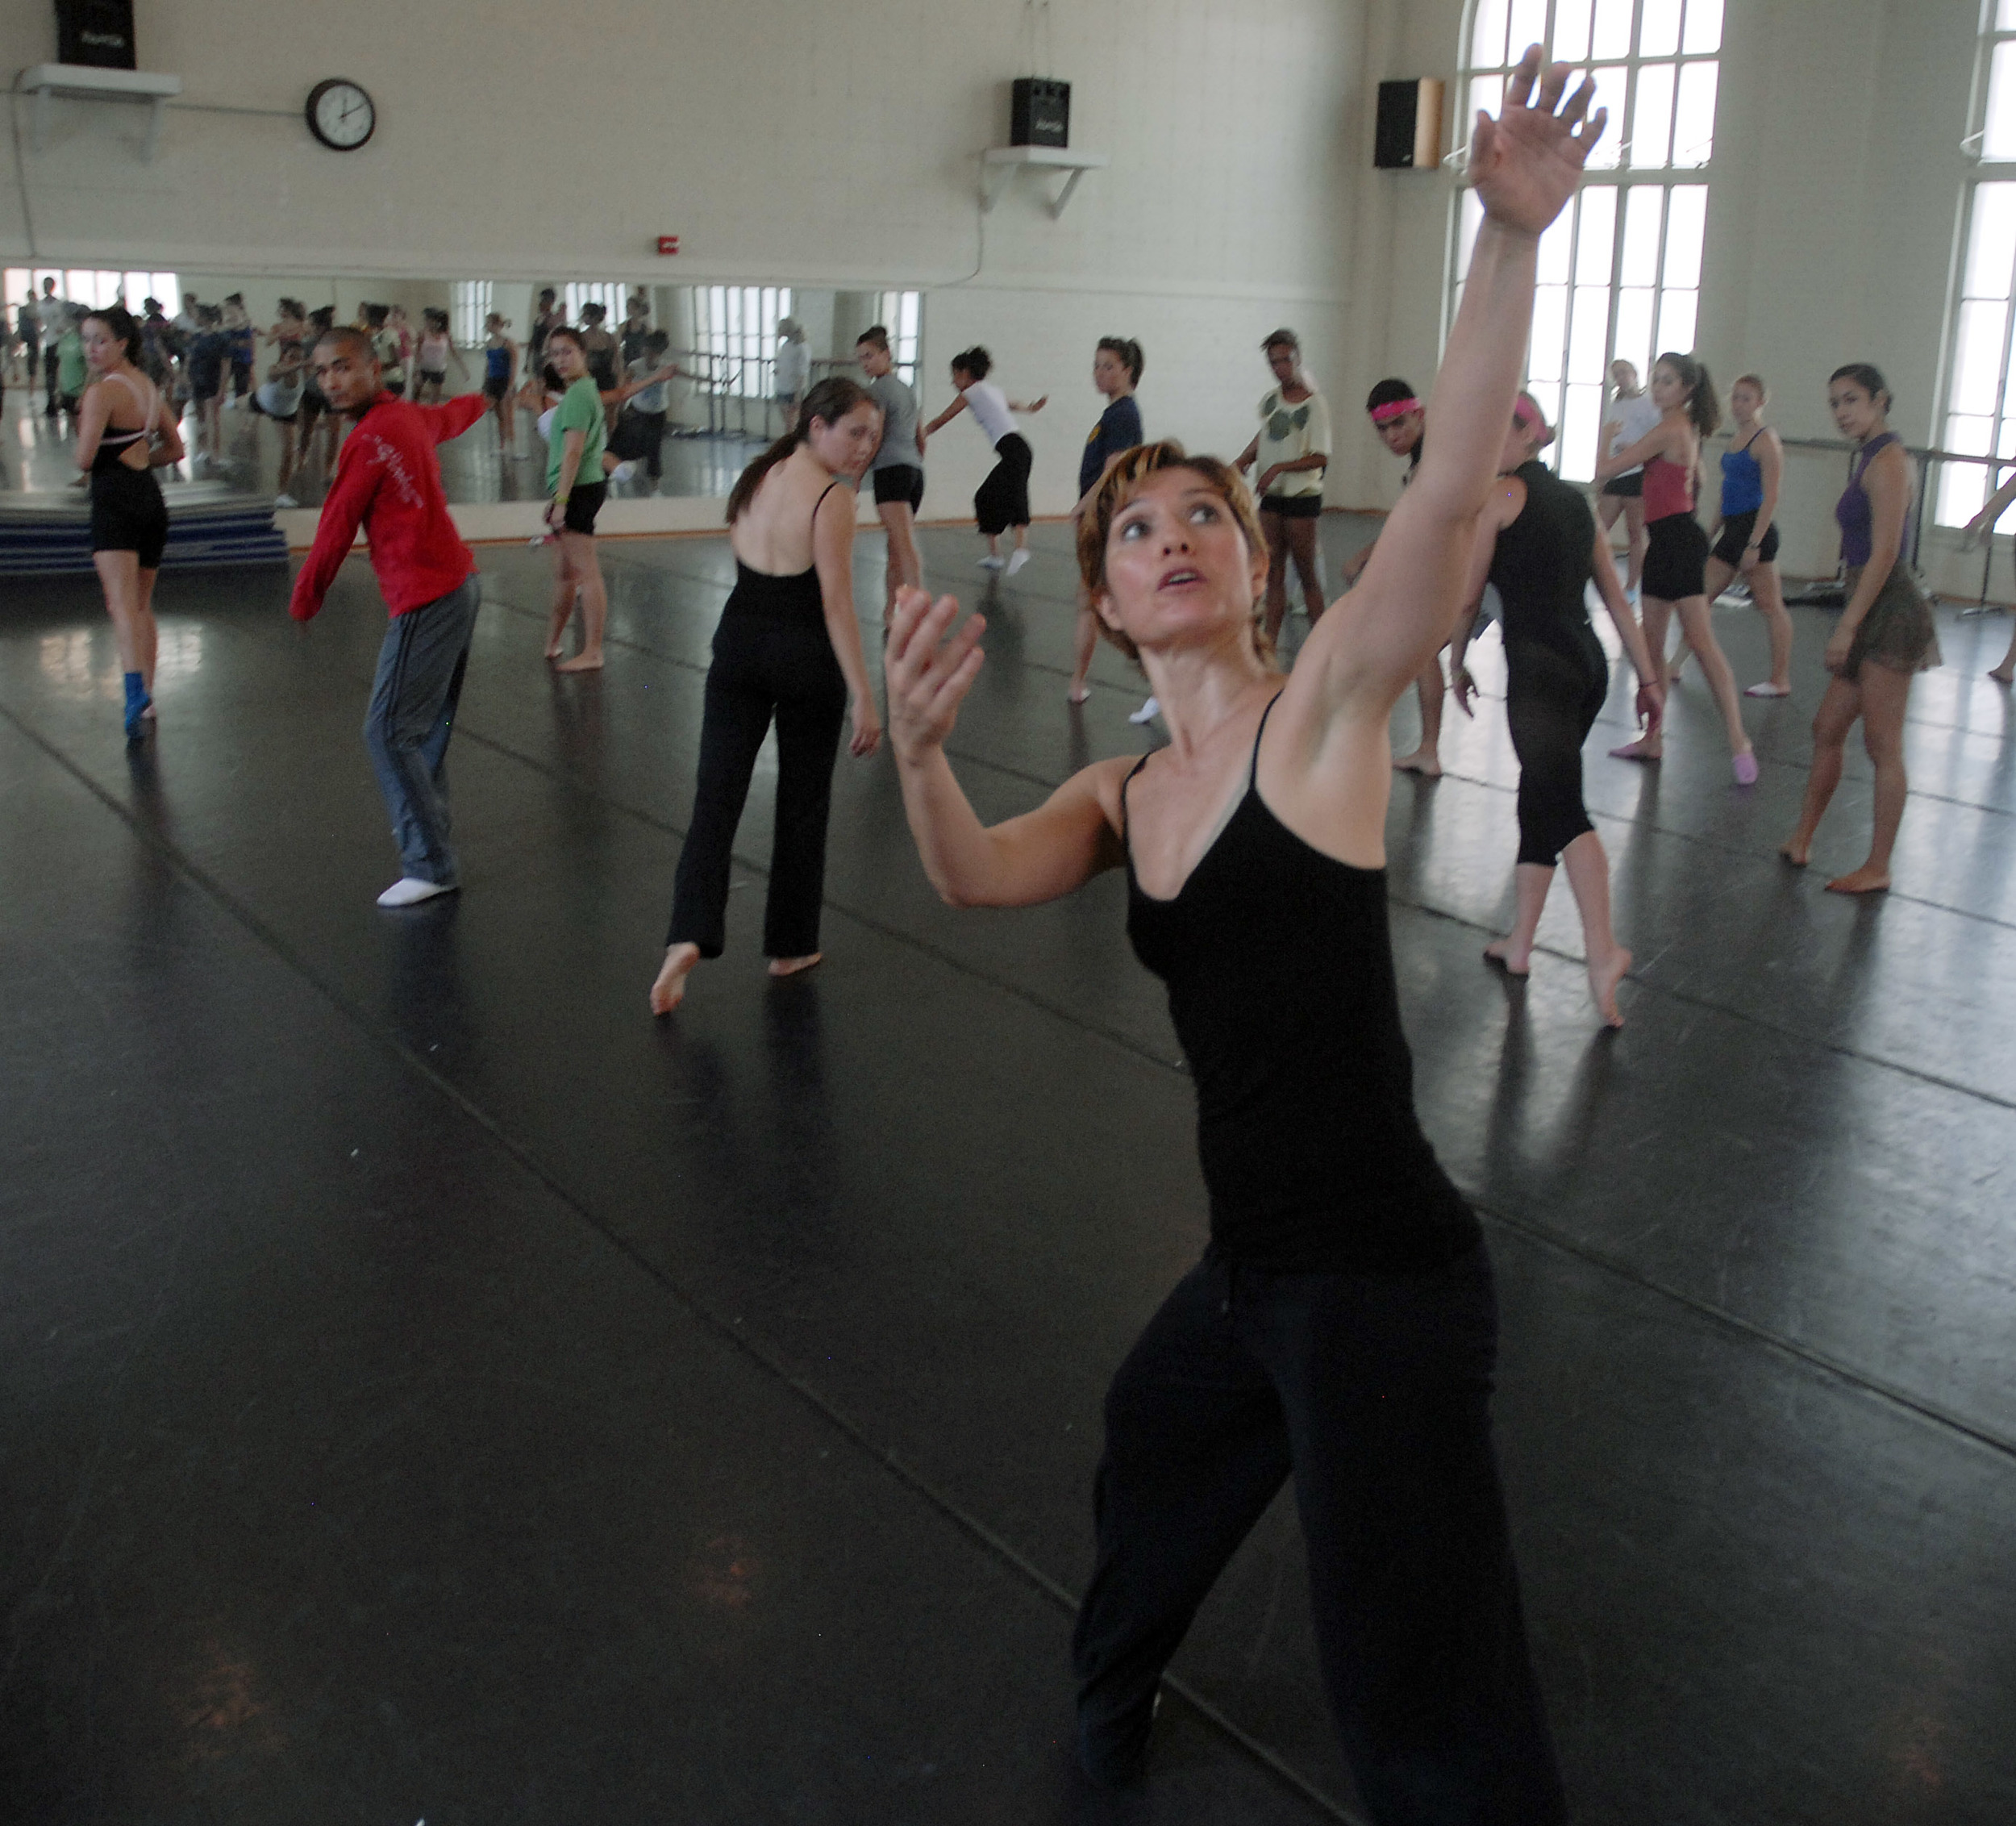 Delfos teaching master class at University of Texas at Ausin, Department of Theatre and Dance. Photo credit: Bret Gerbe